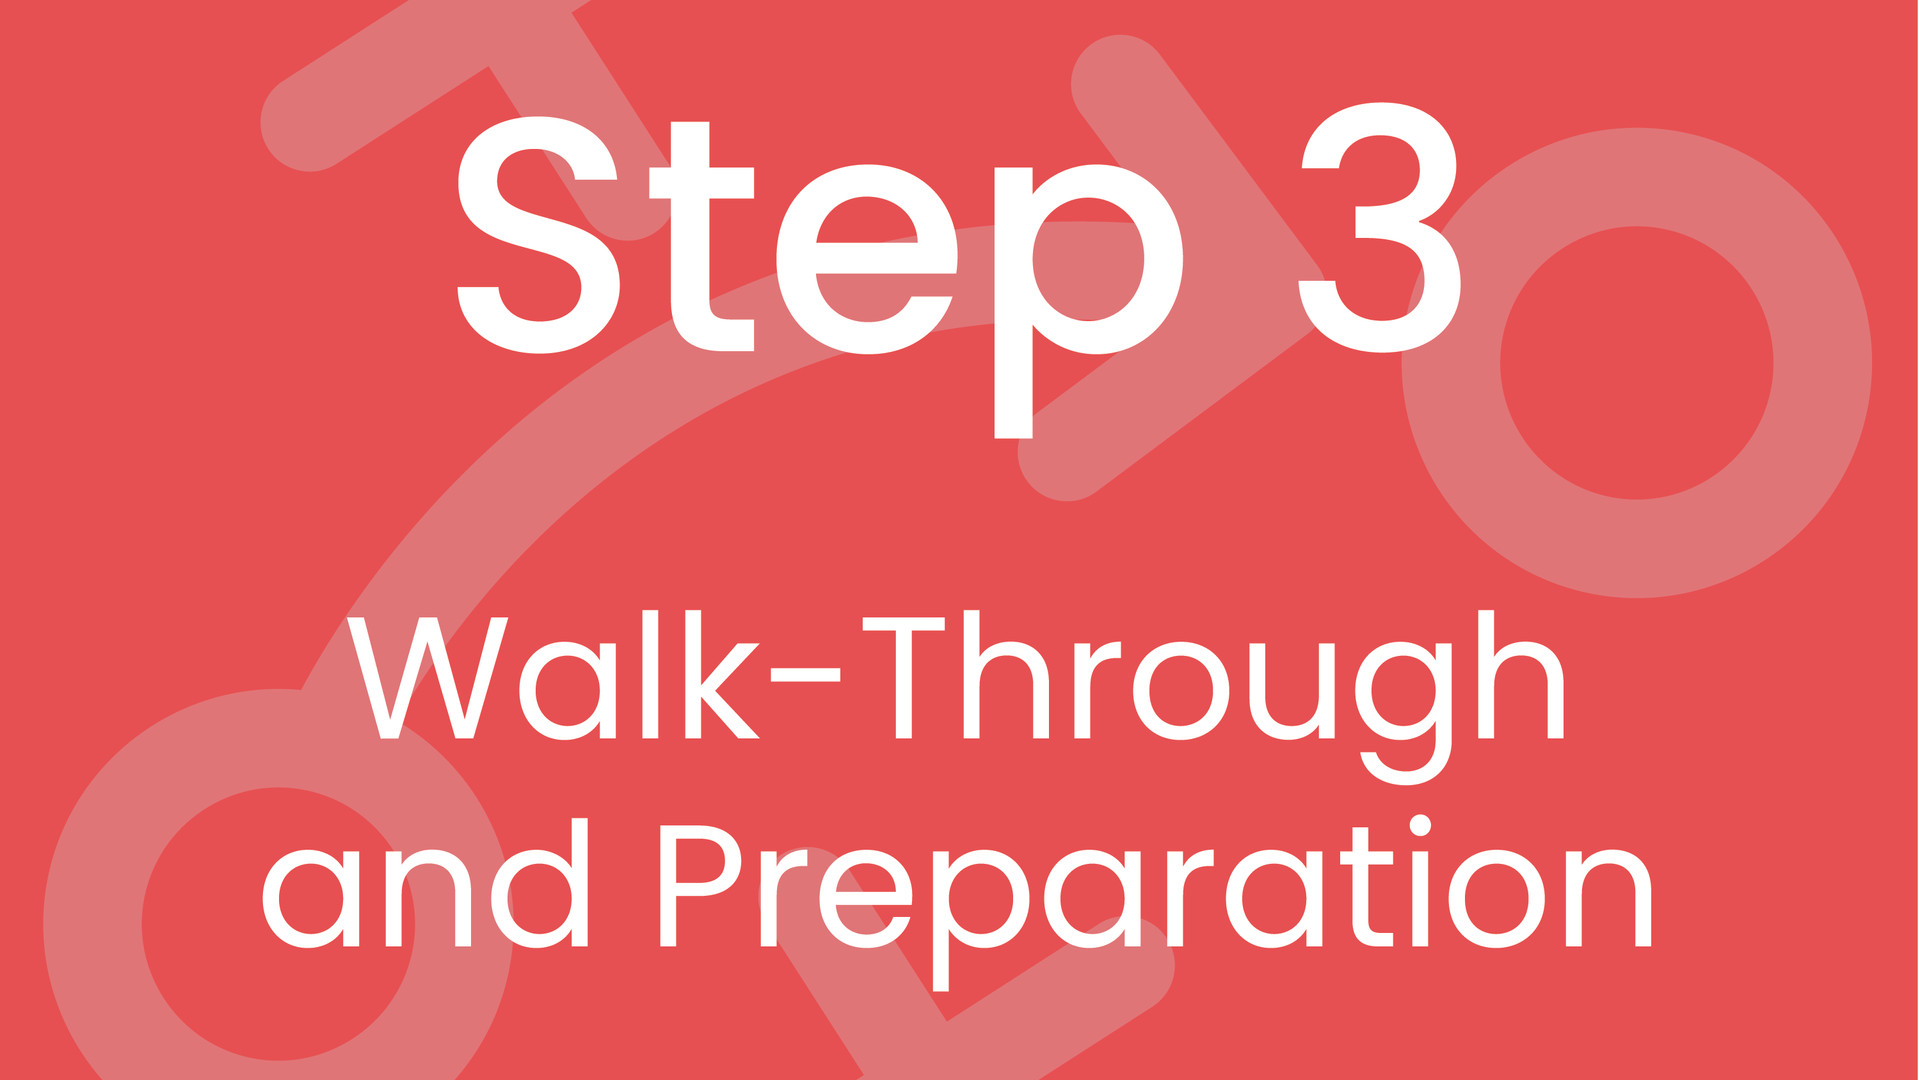 Step 3: Walk-Through and Preparation